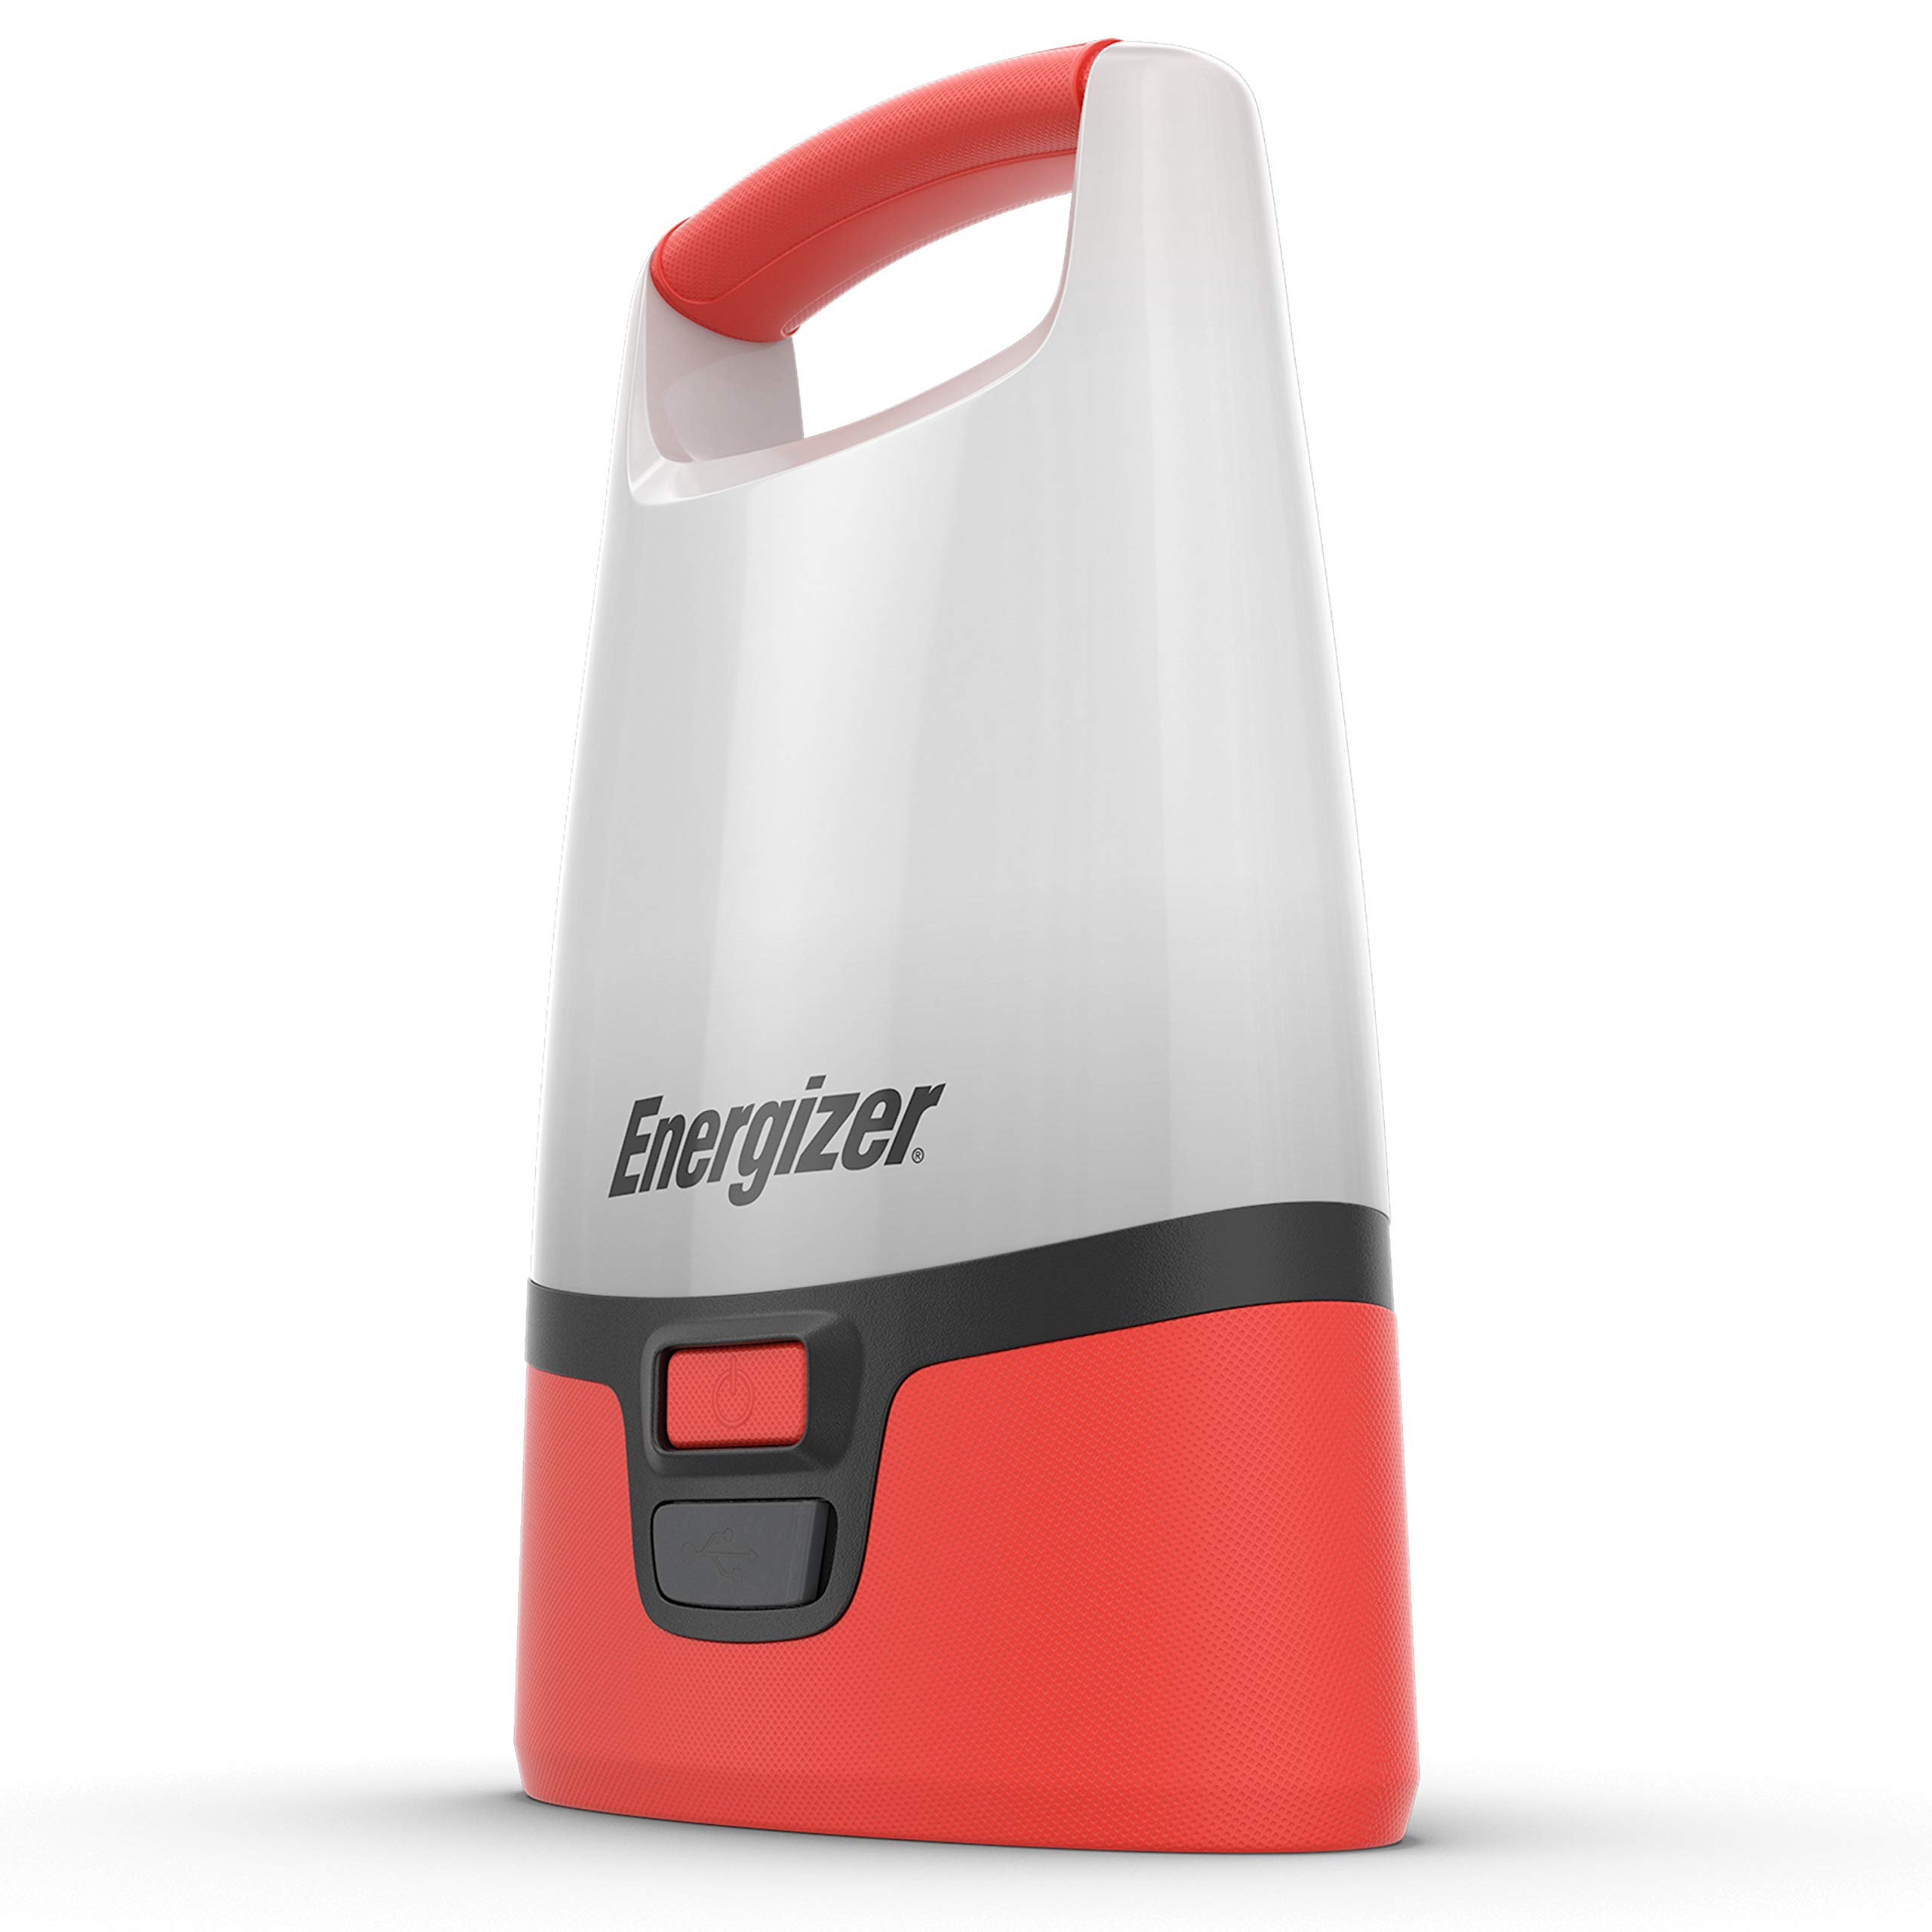 Energizer Lantern Flashlight, Bright 1000 Lumens, Camping, Outdoors, Hurricane, Emergency Use by Energizer